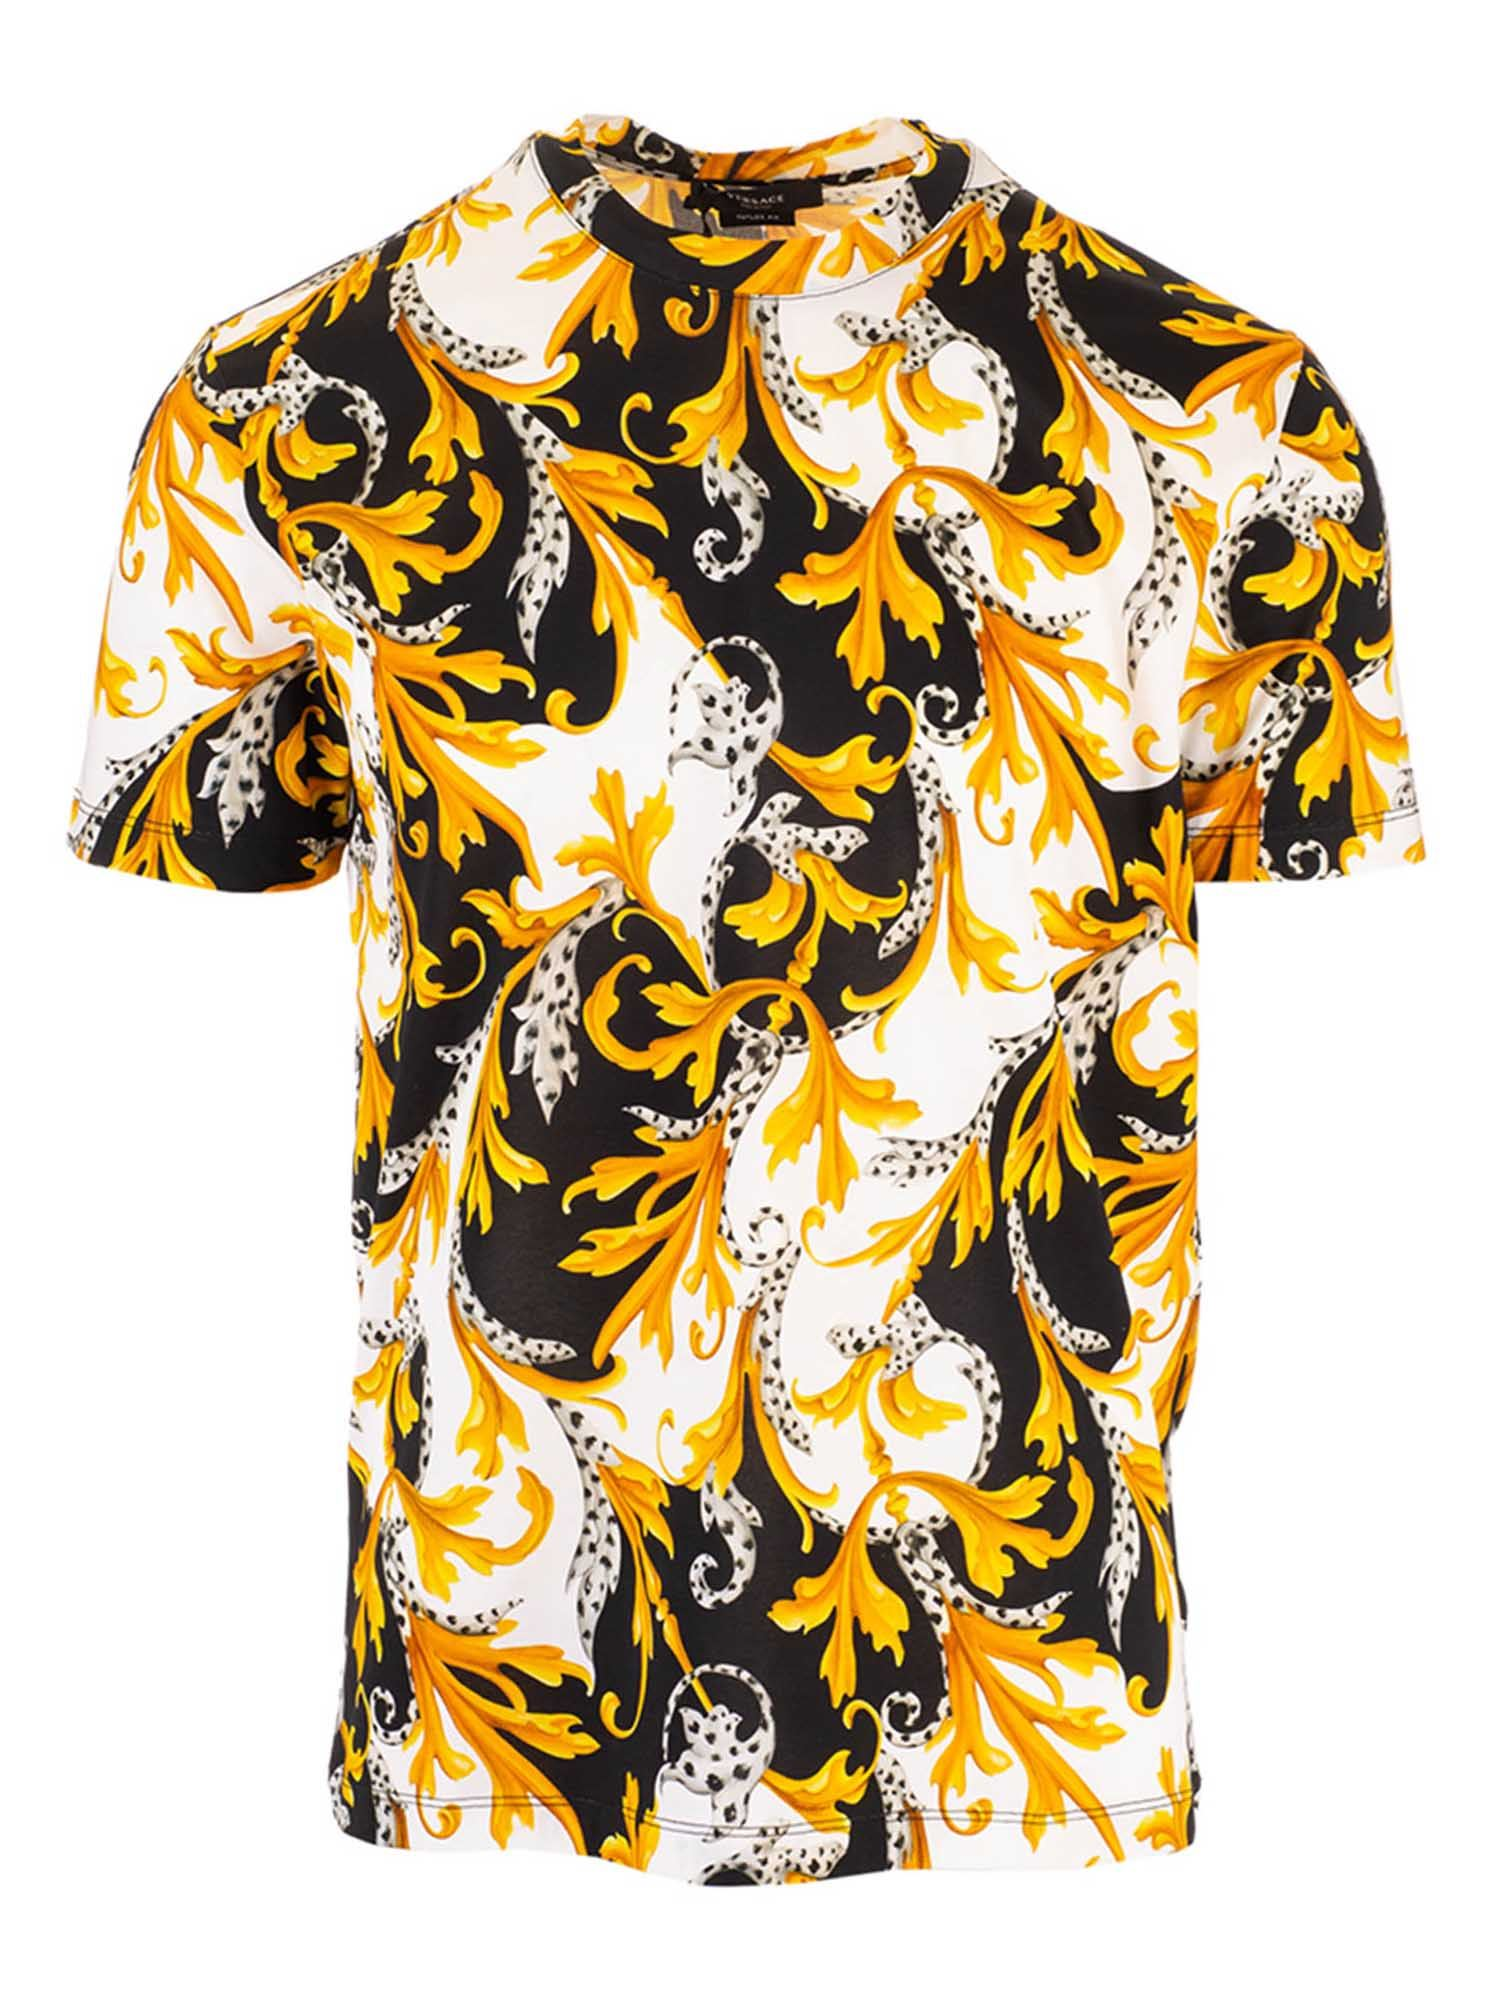 Versace YELLOW ACANTHUS PRINT T-SHIRT IN BLACK AND WHITE